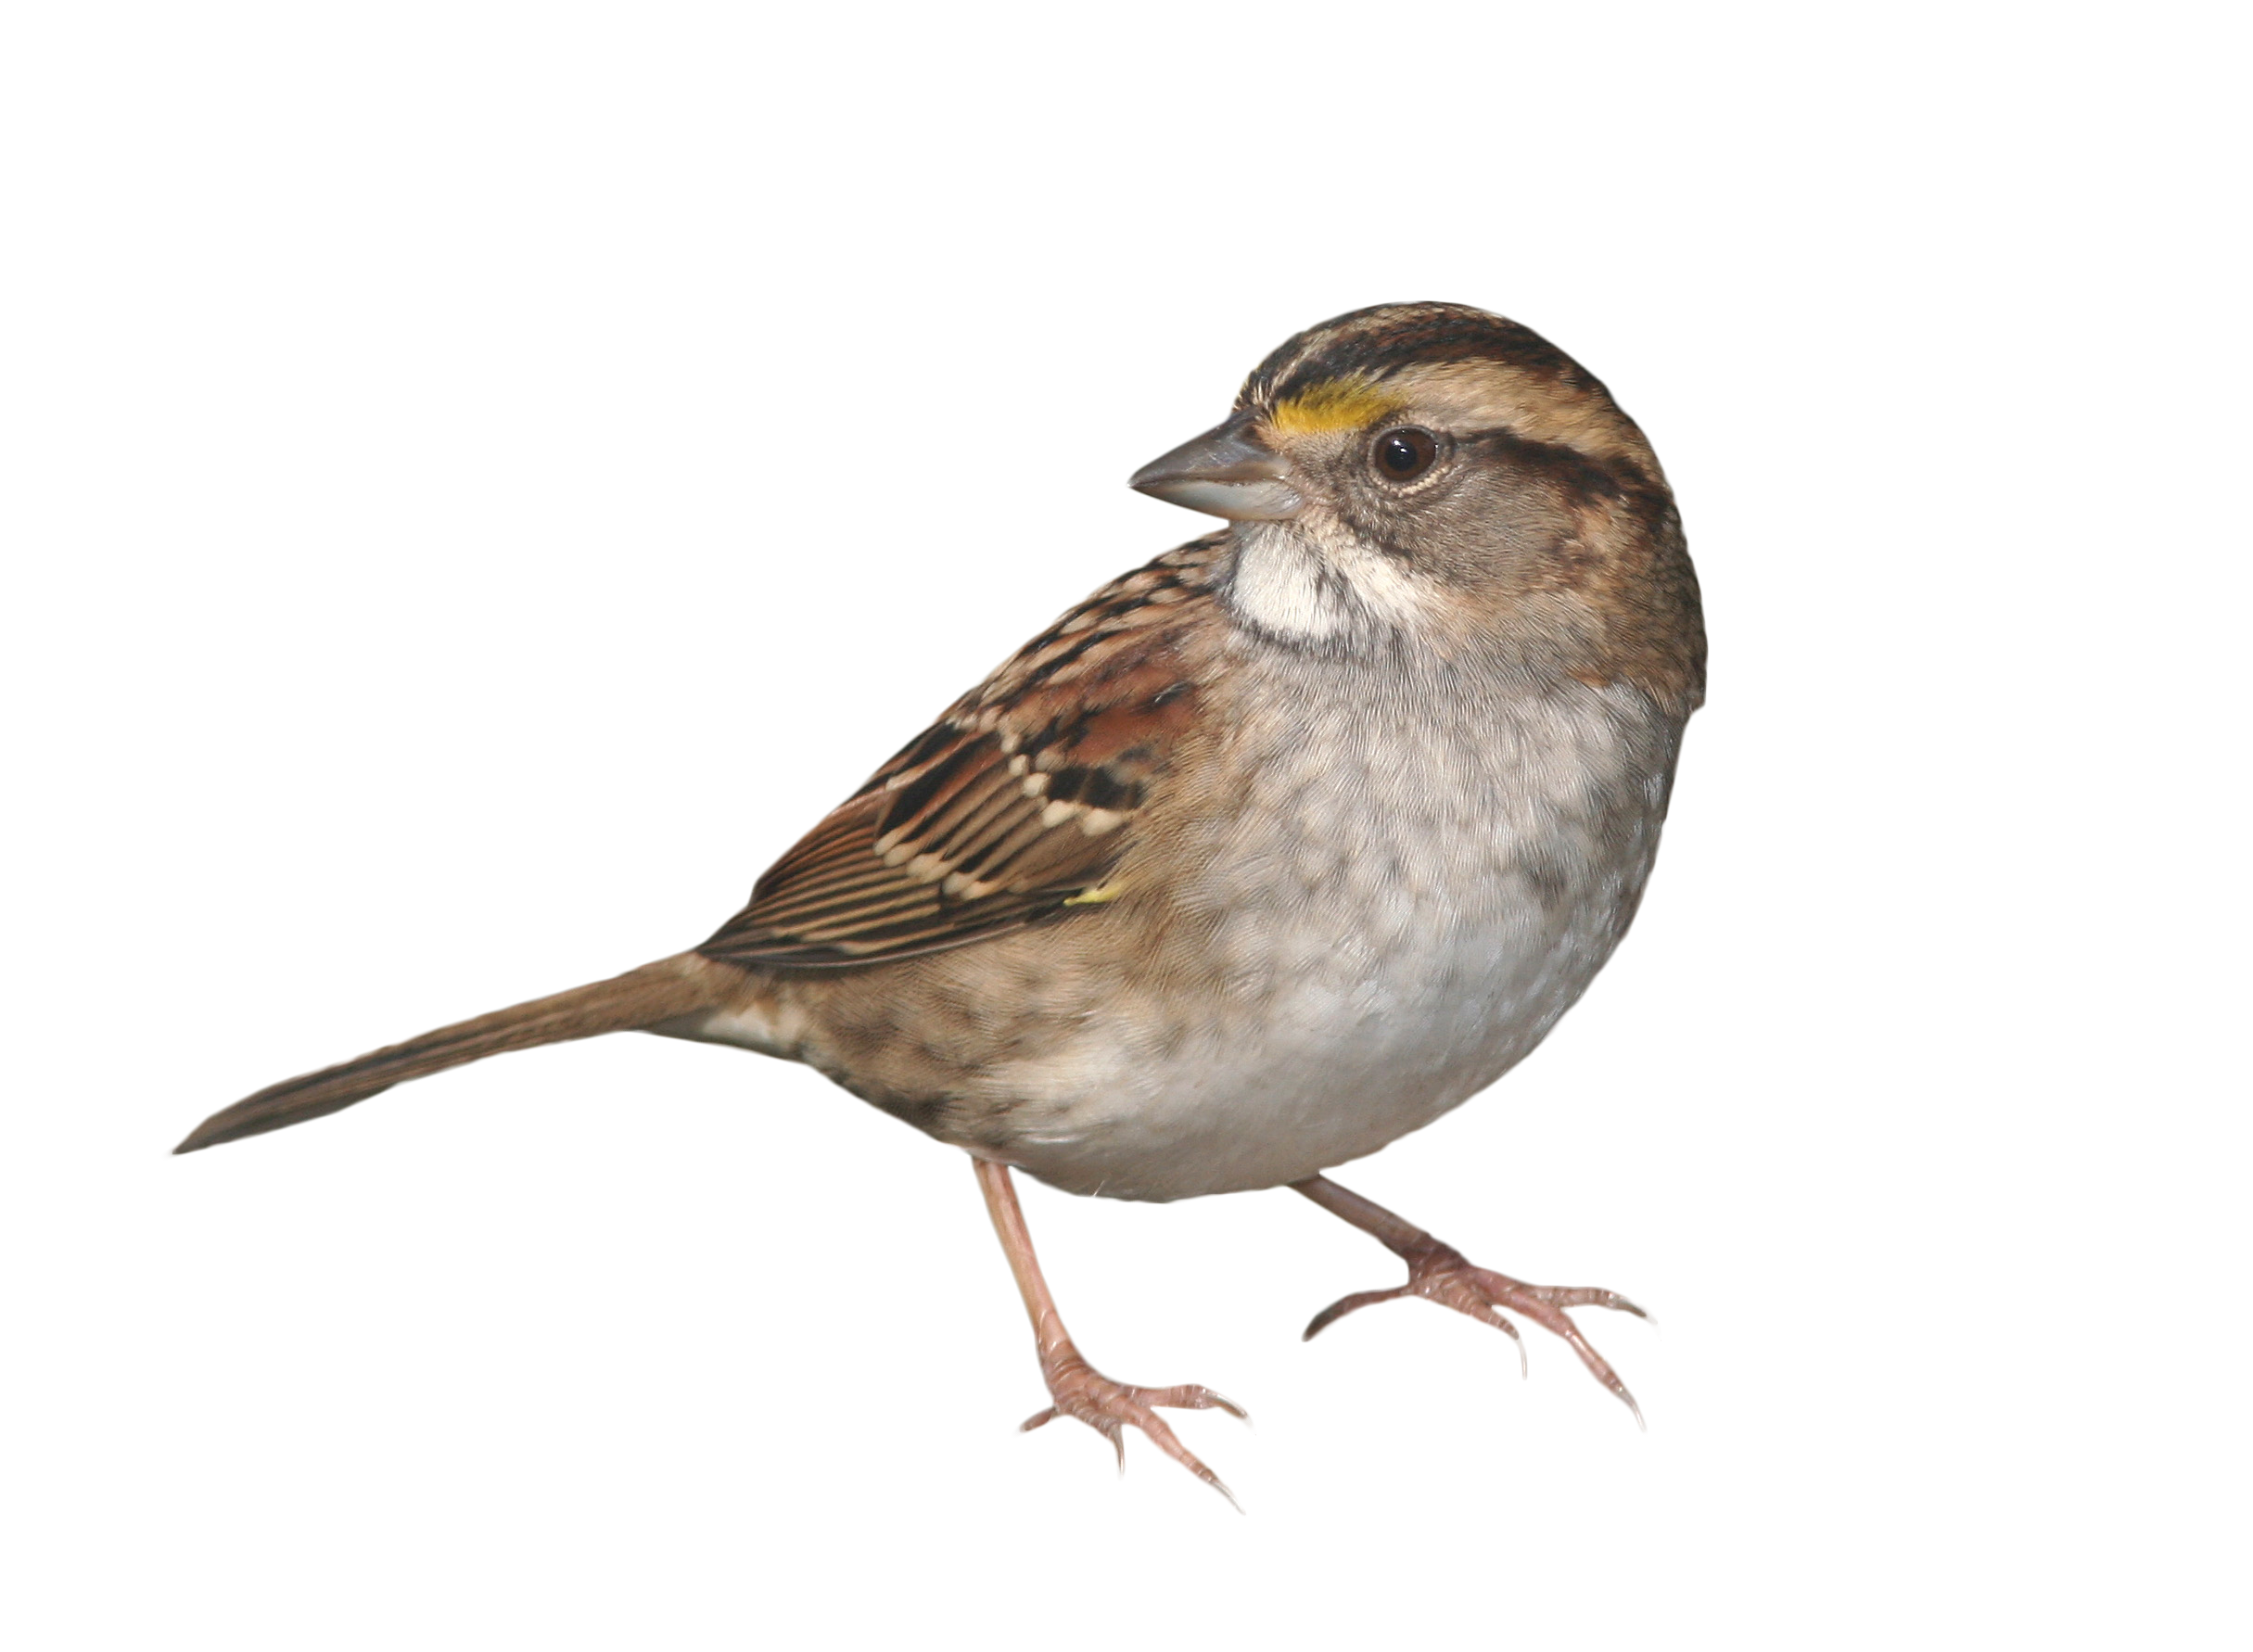 Big Explosion Png Png Image Purepng: Sparrow Standing PNG Image - PurePNG